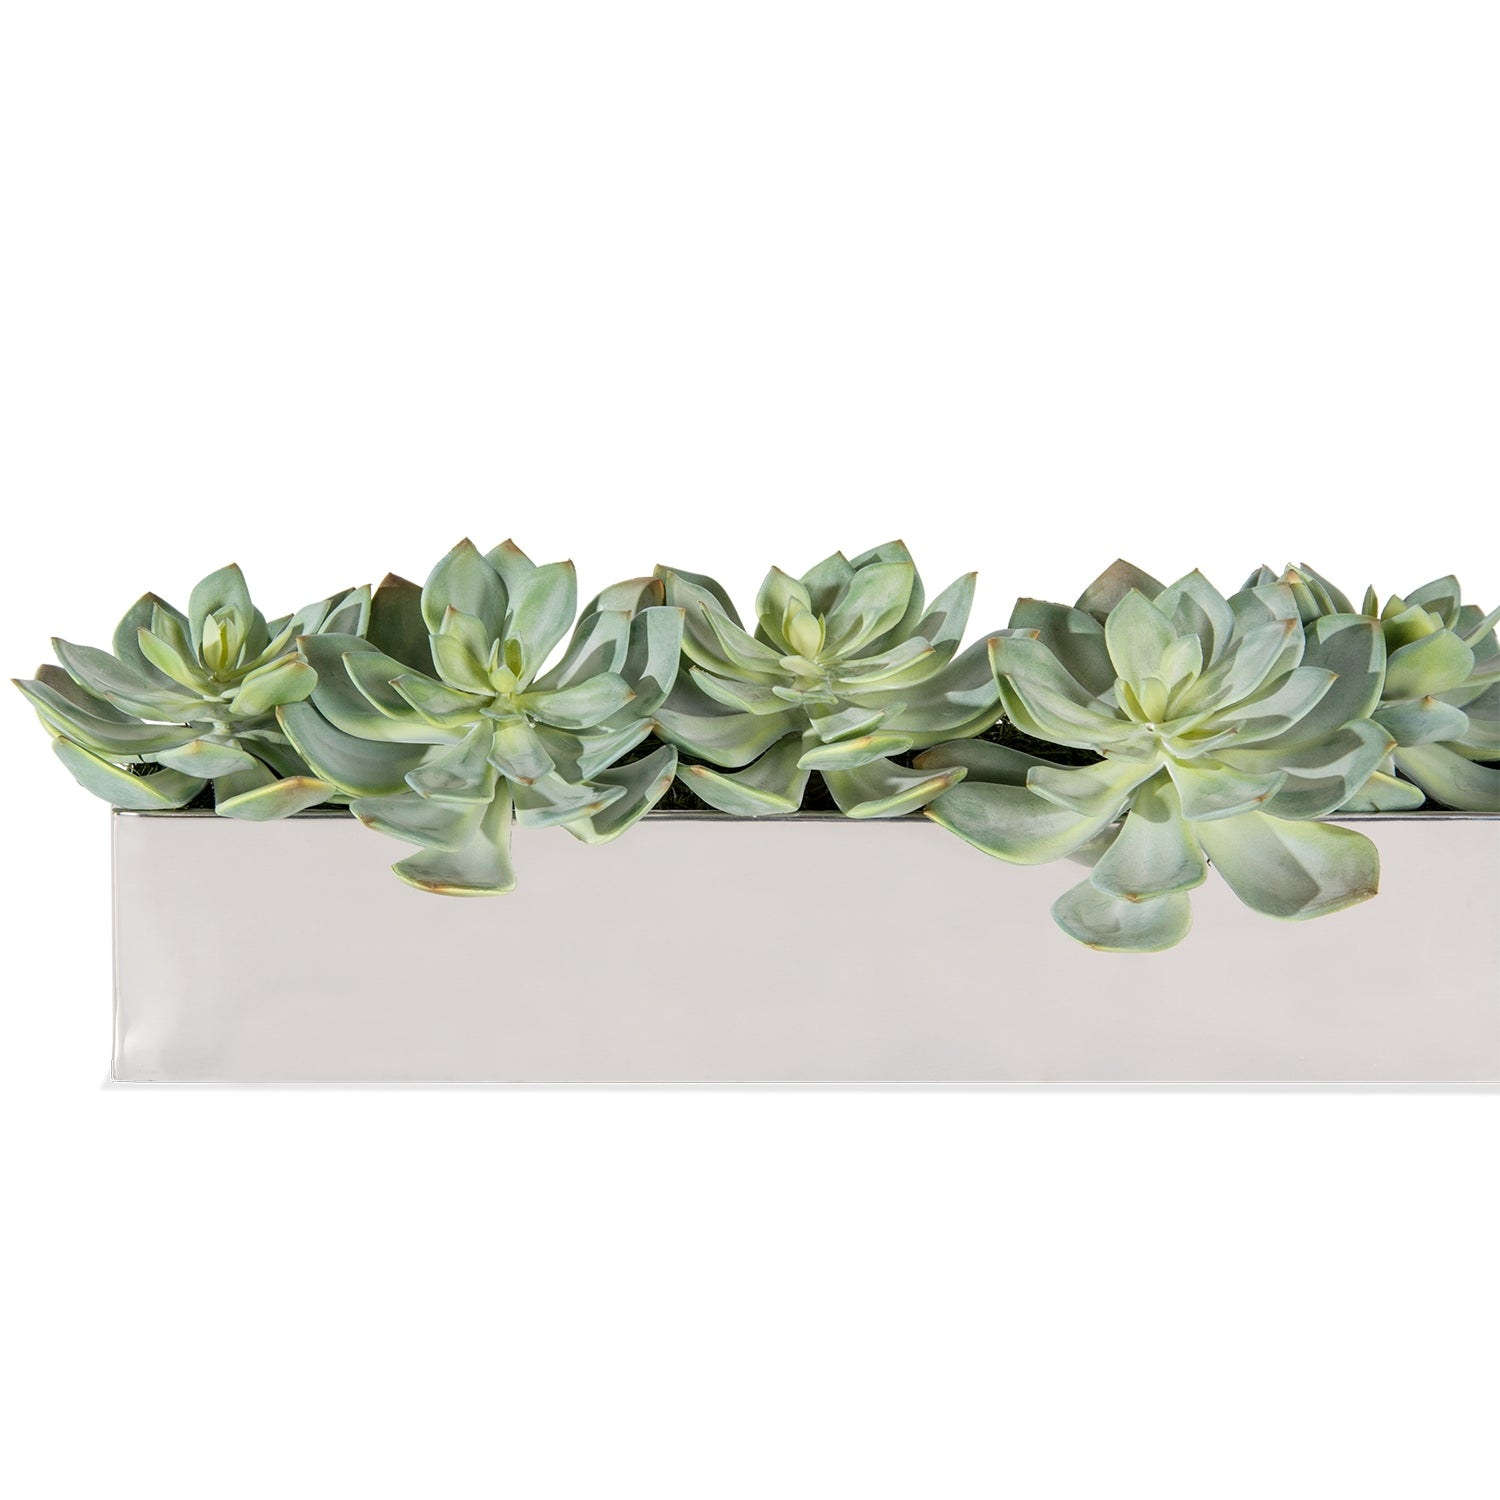 Grapto in Rectangle Stainless Table Planter